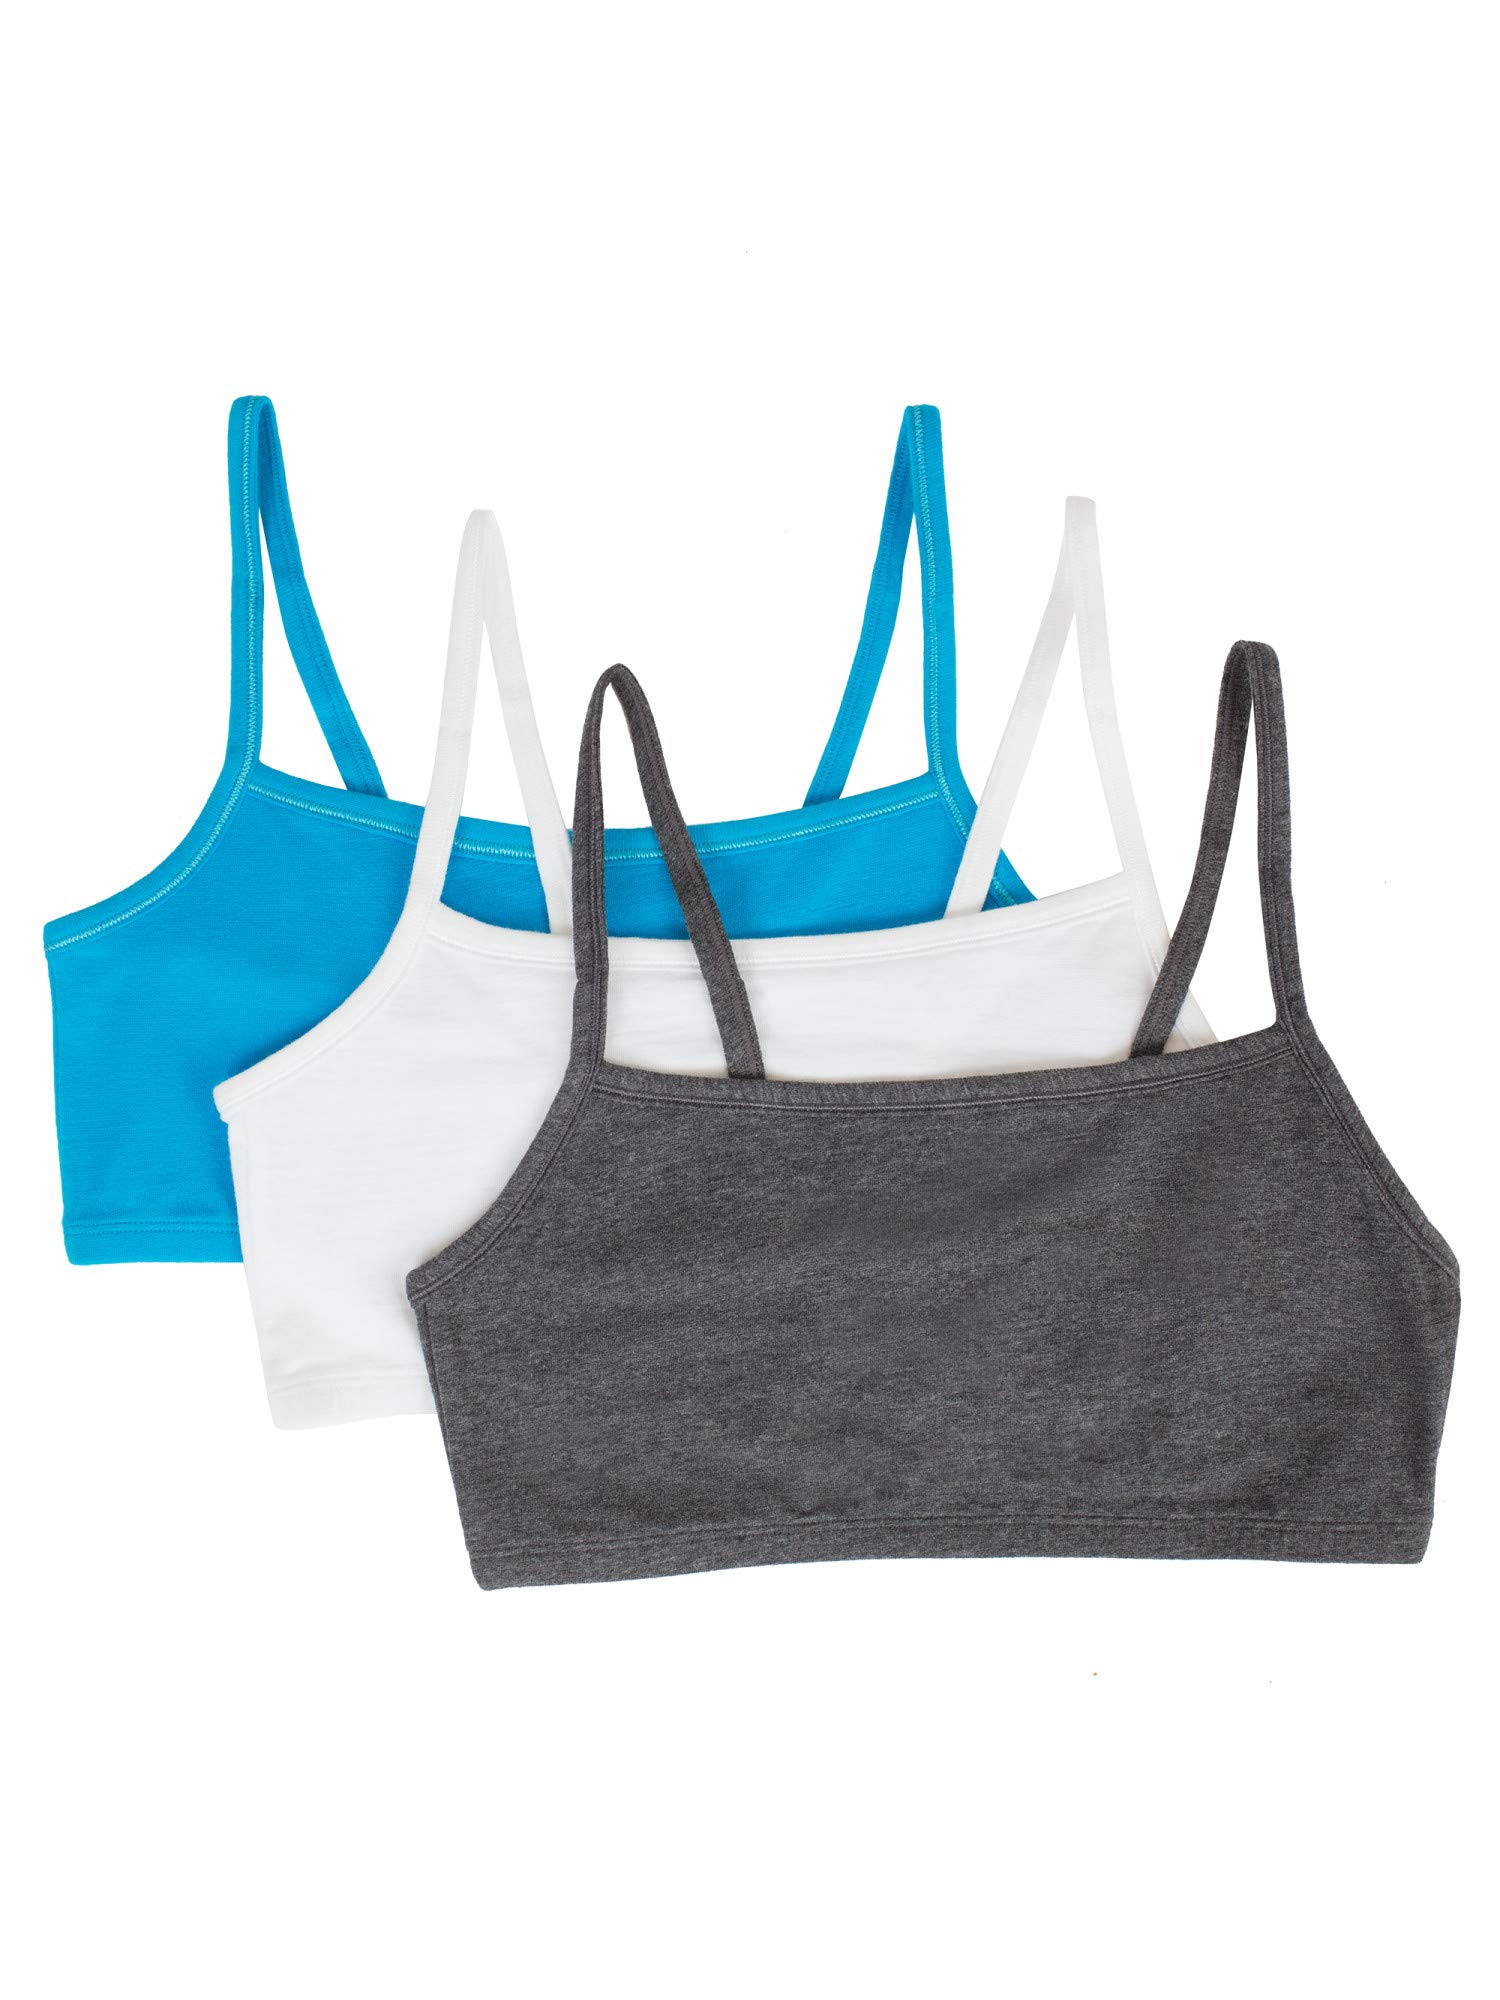 Fruit of the Loom Women's Cotton Pullover Sport Bra, Charcoal Heather White/ISAZURE-3 Pack, 32